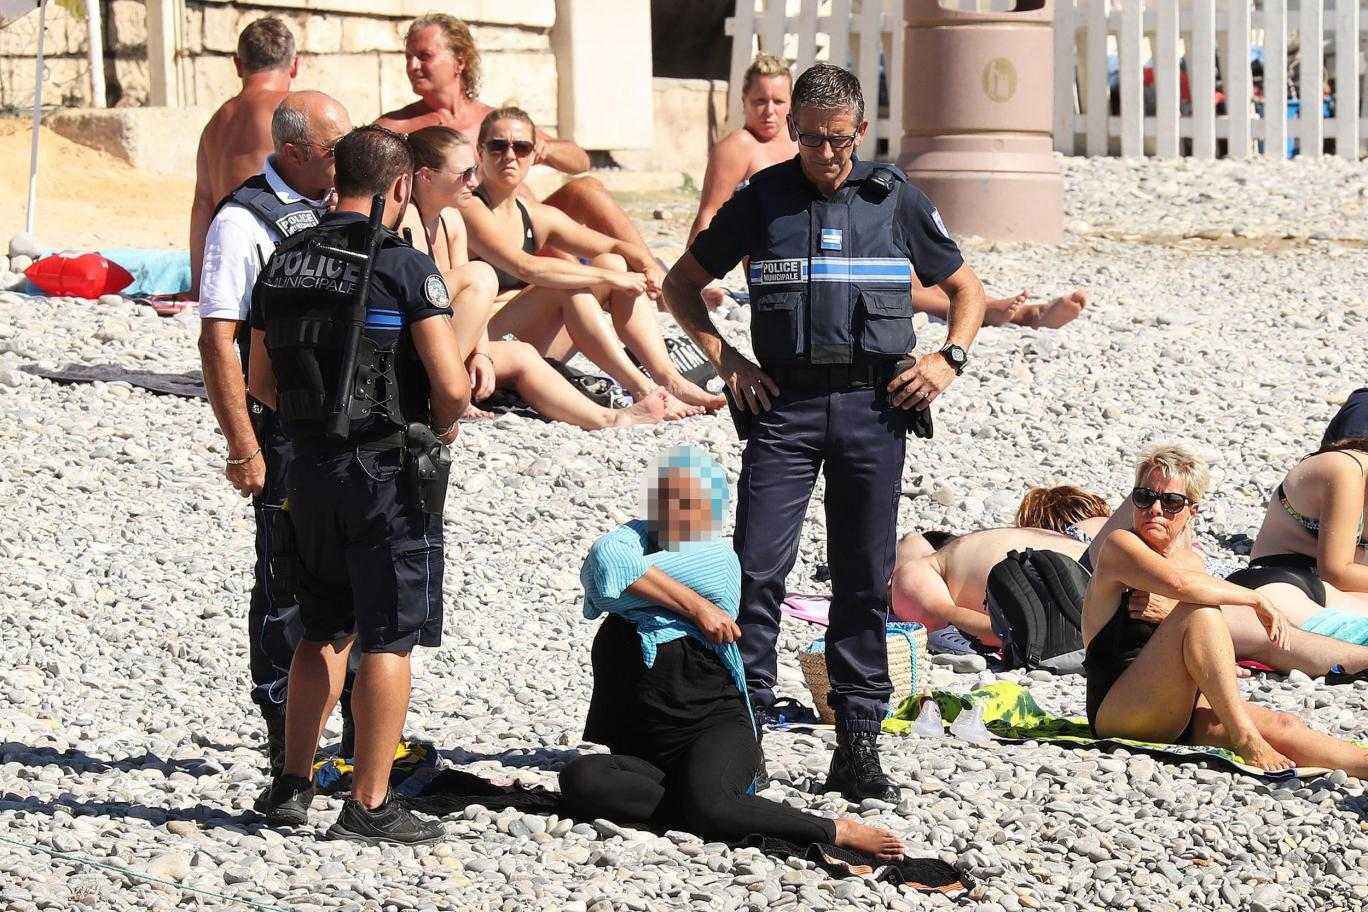 Woman being undressed by police in public in Cannes, which started off the debate.Credit:  The Independent